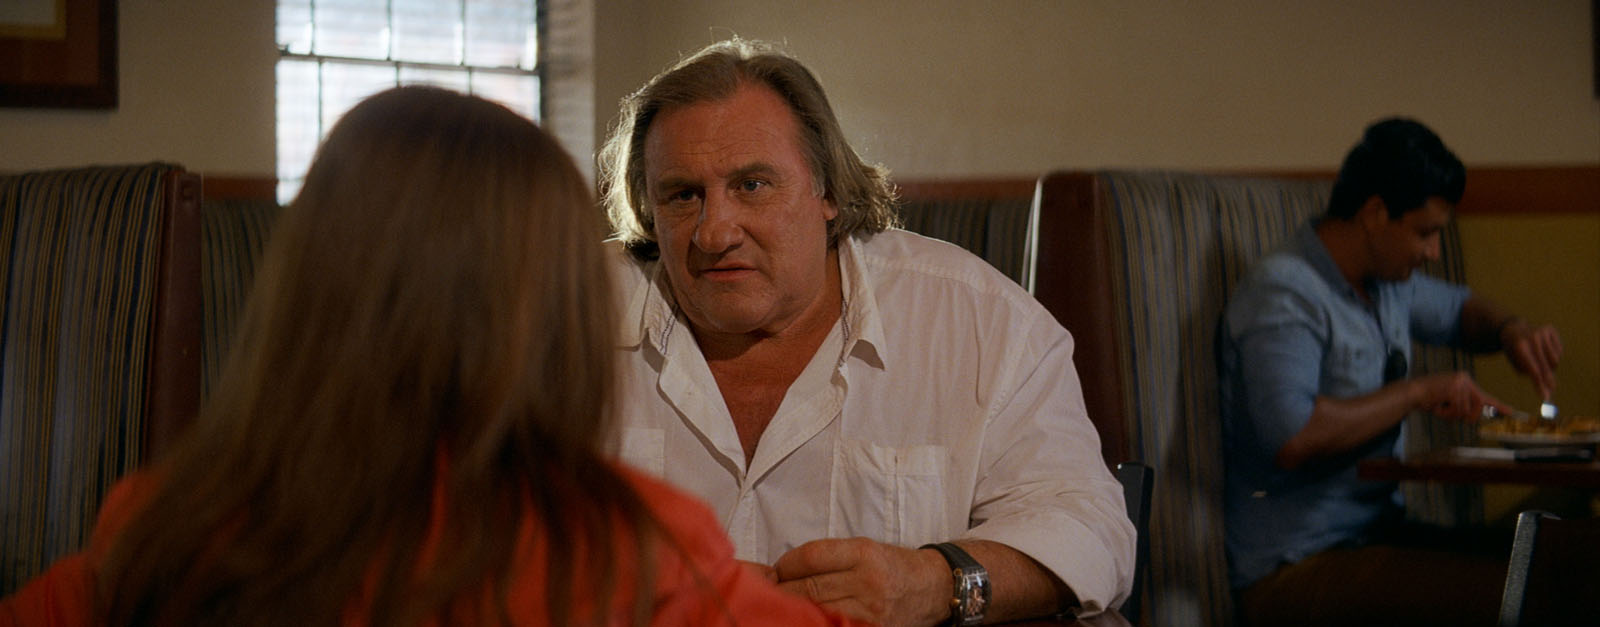 VALLEY OF LOVE - Image du Film Gerard Depardieu Isabelle Huppert 3 2015 Nicloux - Go with the Blog